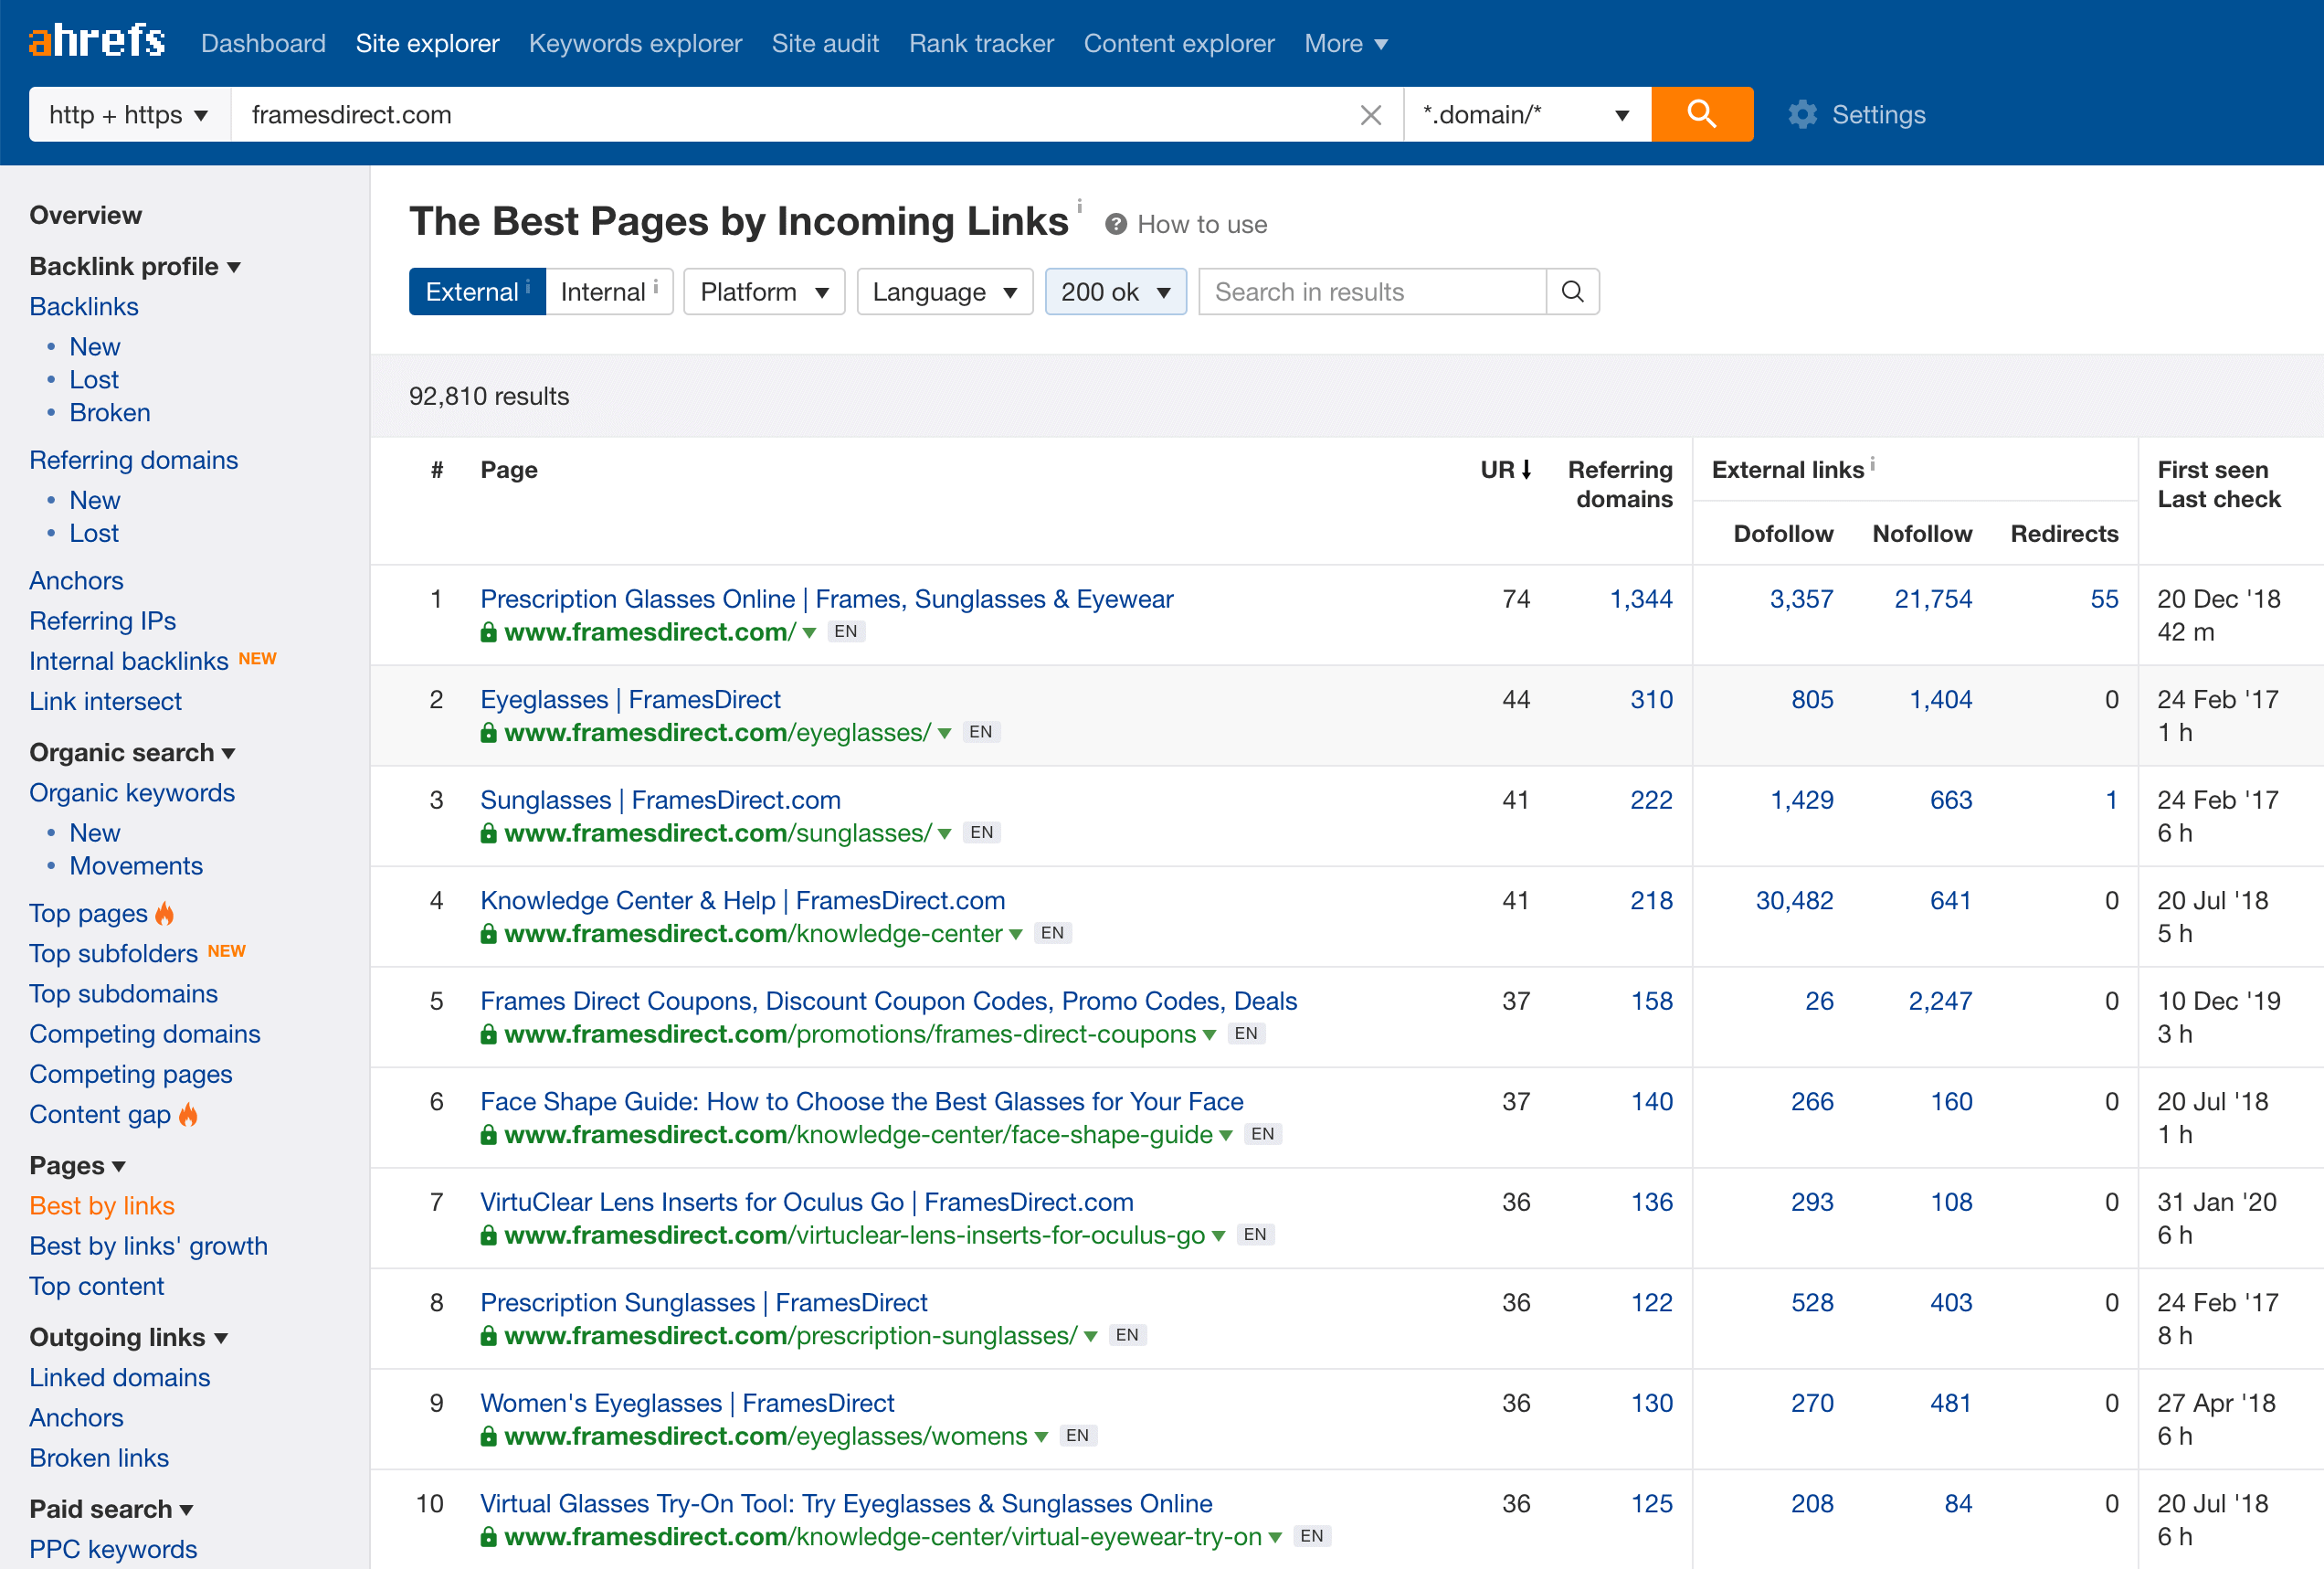 Ahrefs screenshot with results from the Best by links report.